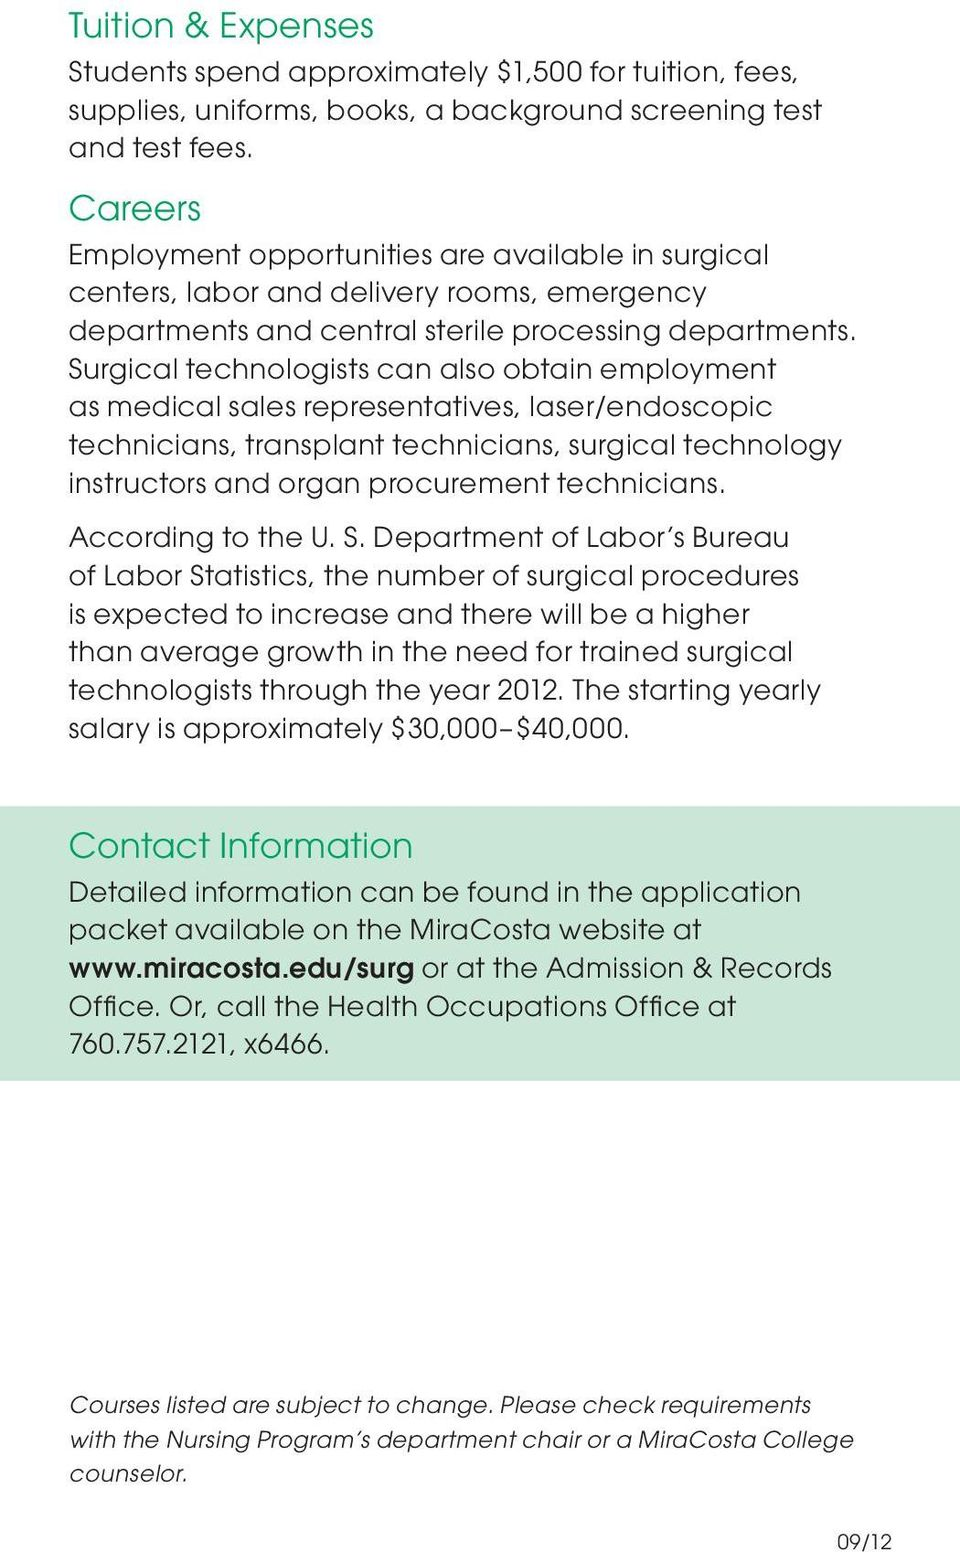 Surgical technologists can also obtain employment as medical sales representatives, laser/endoscopic technicians, transplant technicians, surgical technology instructors and organ procurement